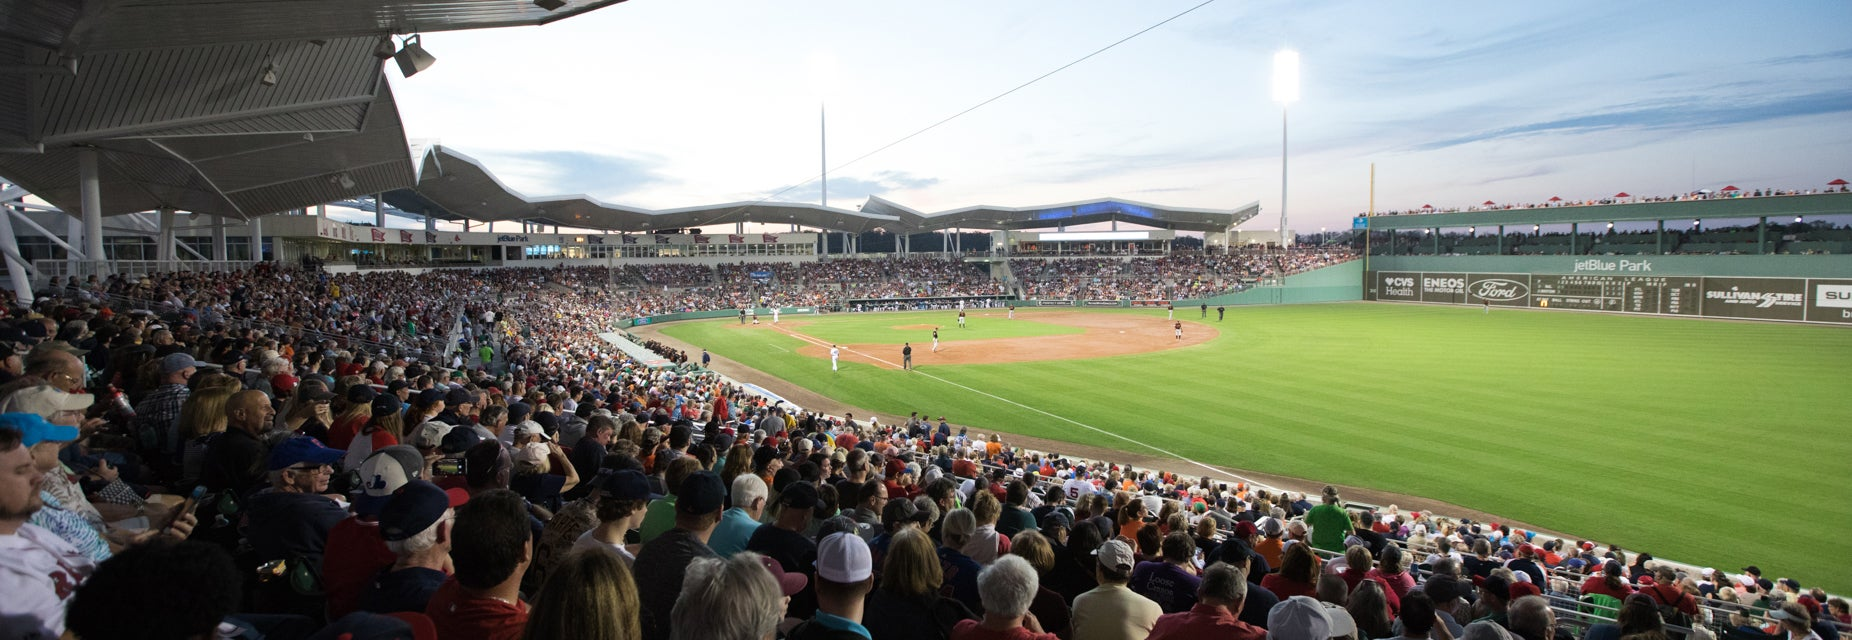 Seat view from Right Field Grandstand